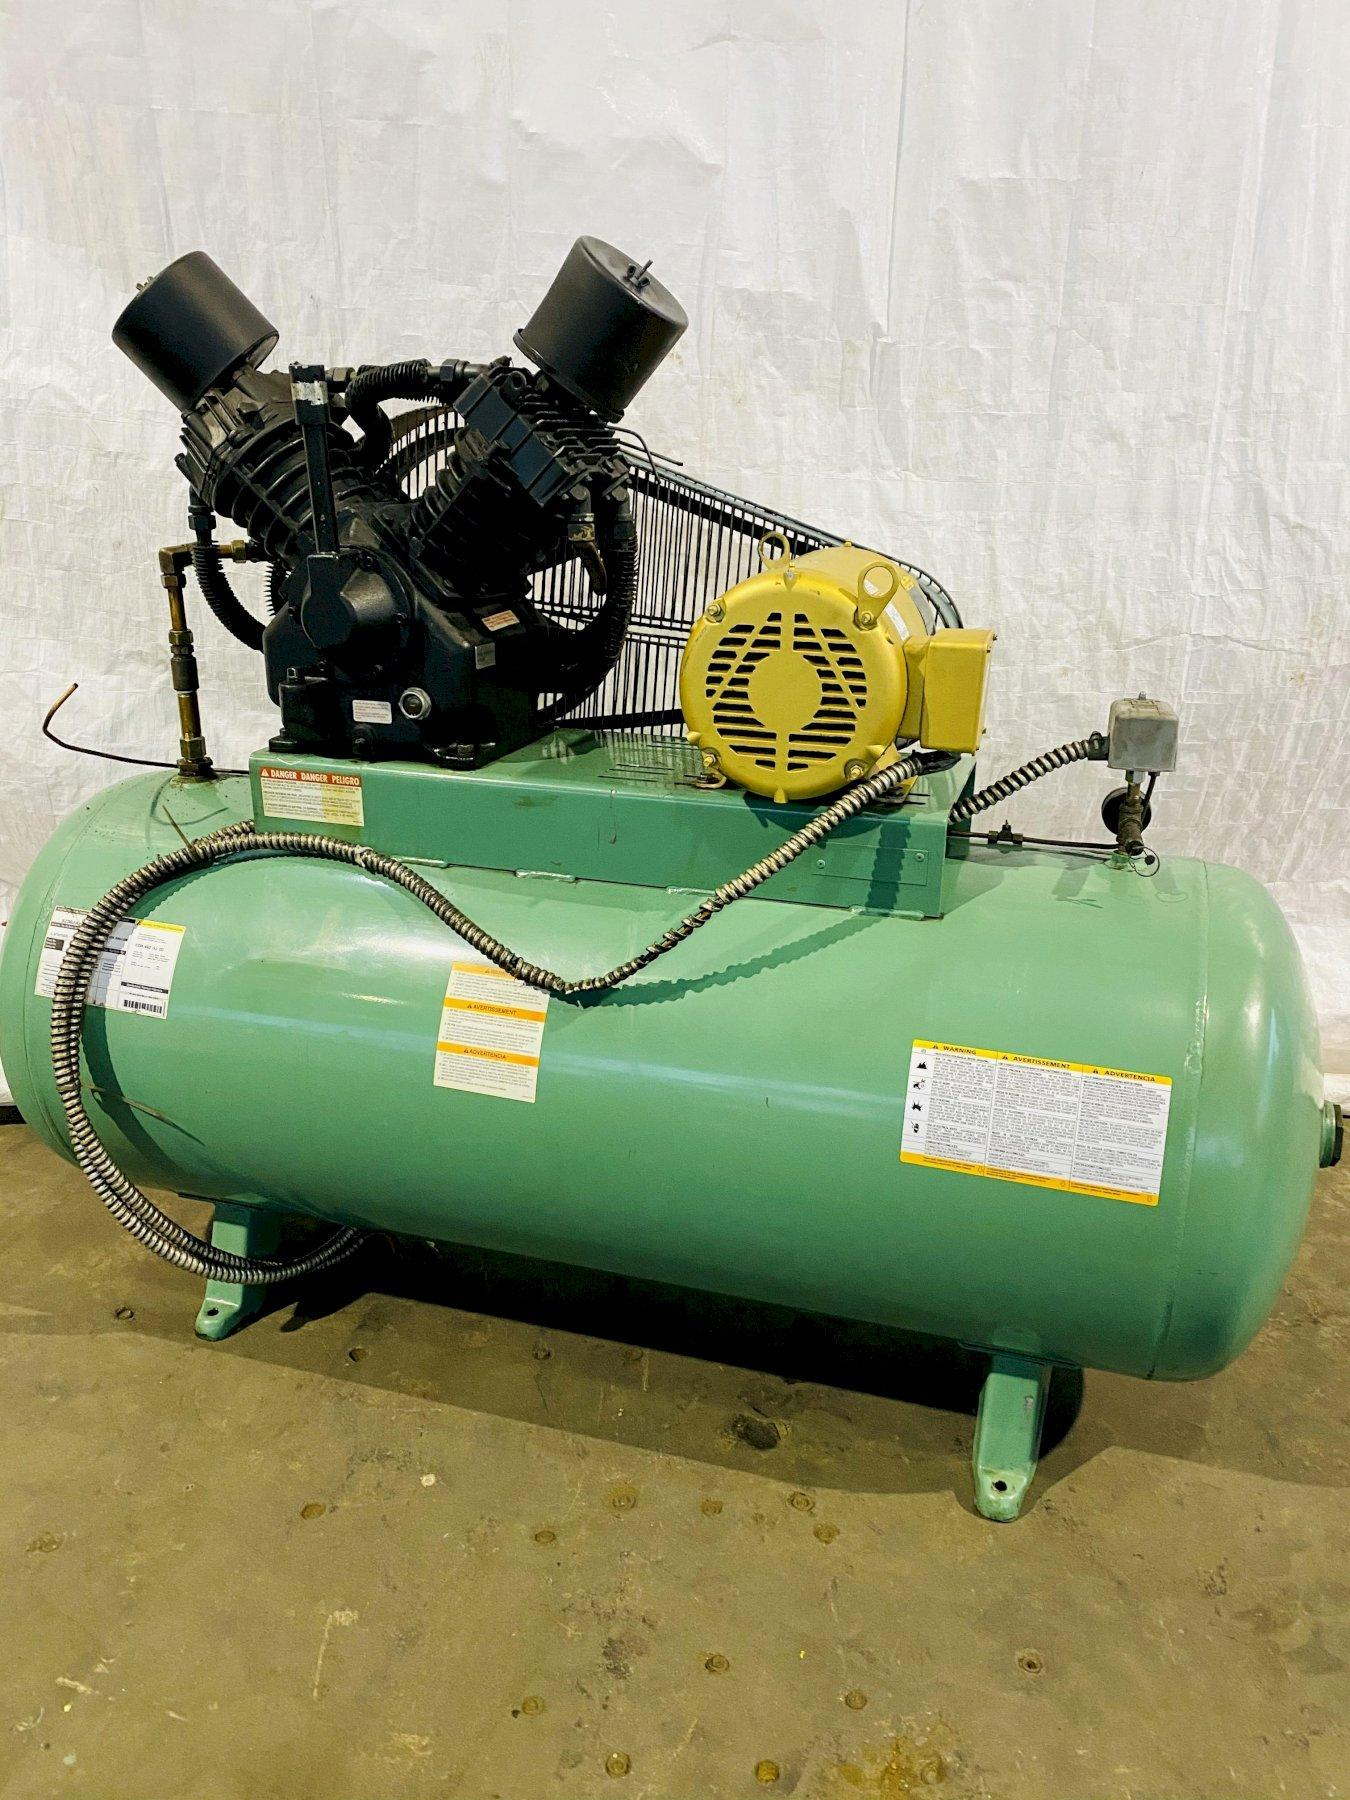 10 HP DAYTON 5Z362 HORIZONTAL AIR COMPRESSOR. STOCK # 1162220